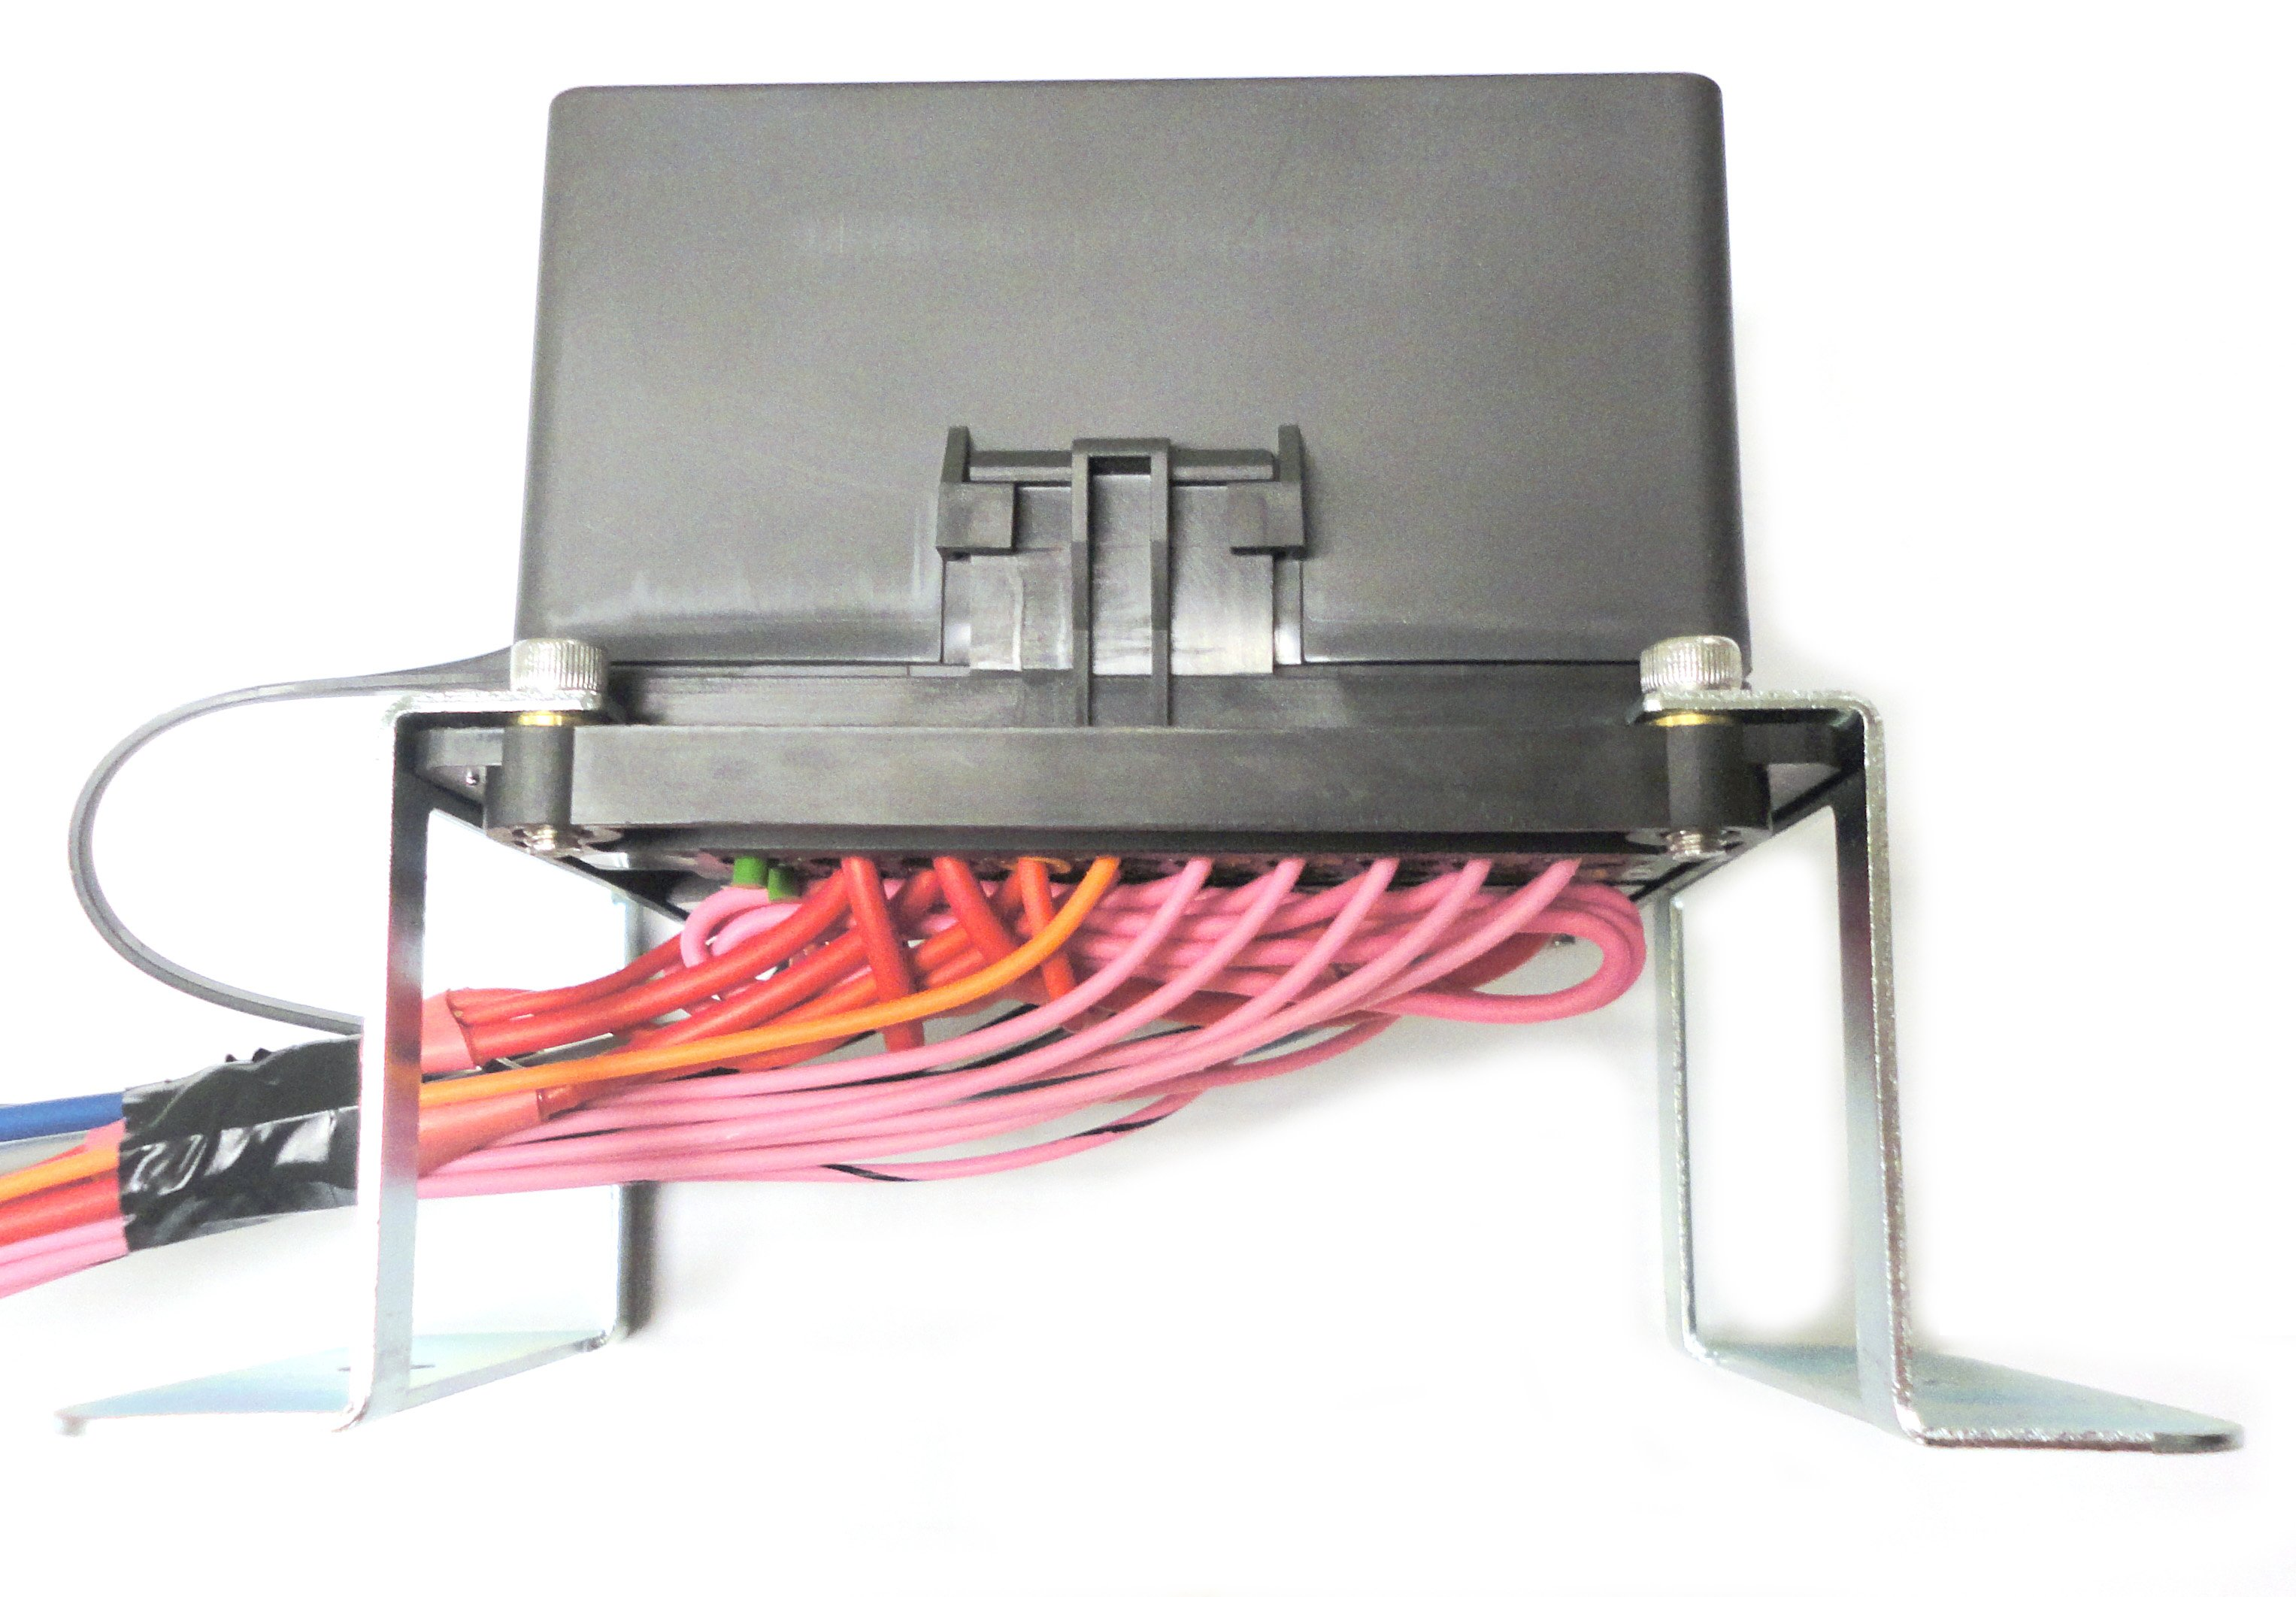 SA2000_Side Lt Wiring Harness Stand Alone on ls3 stand alone, stock stand alone, lsx stand alone, ls1 stand alone, fast stand alone,